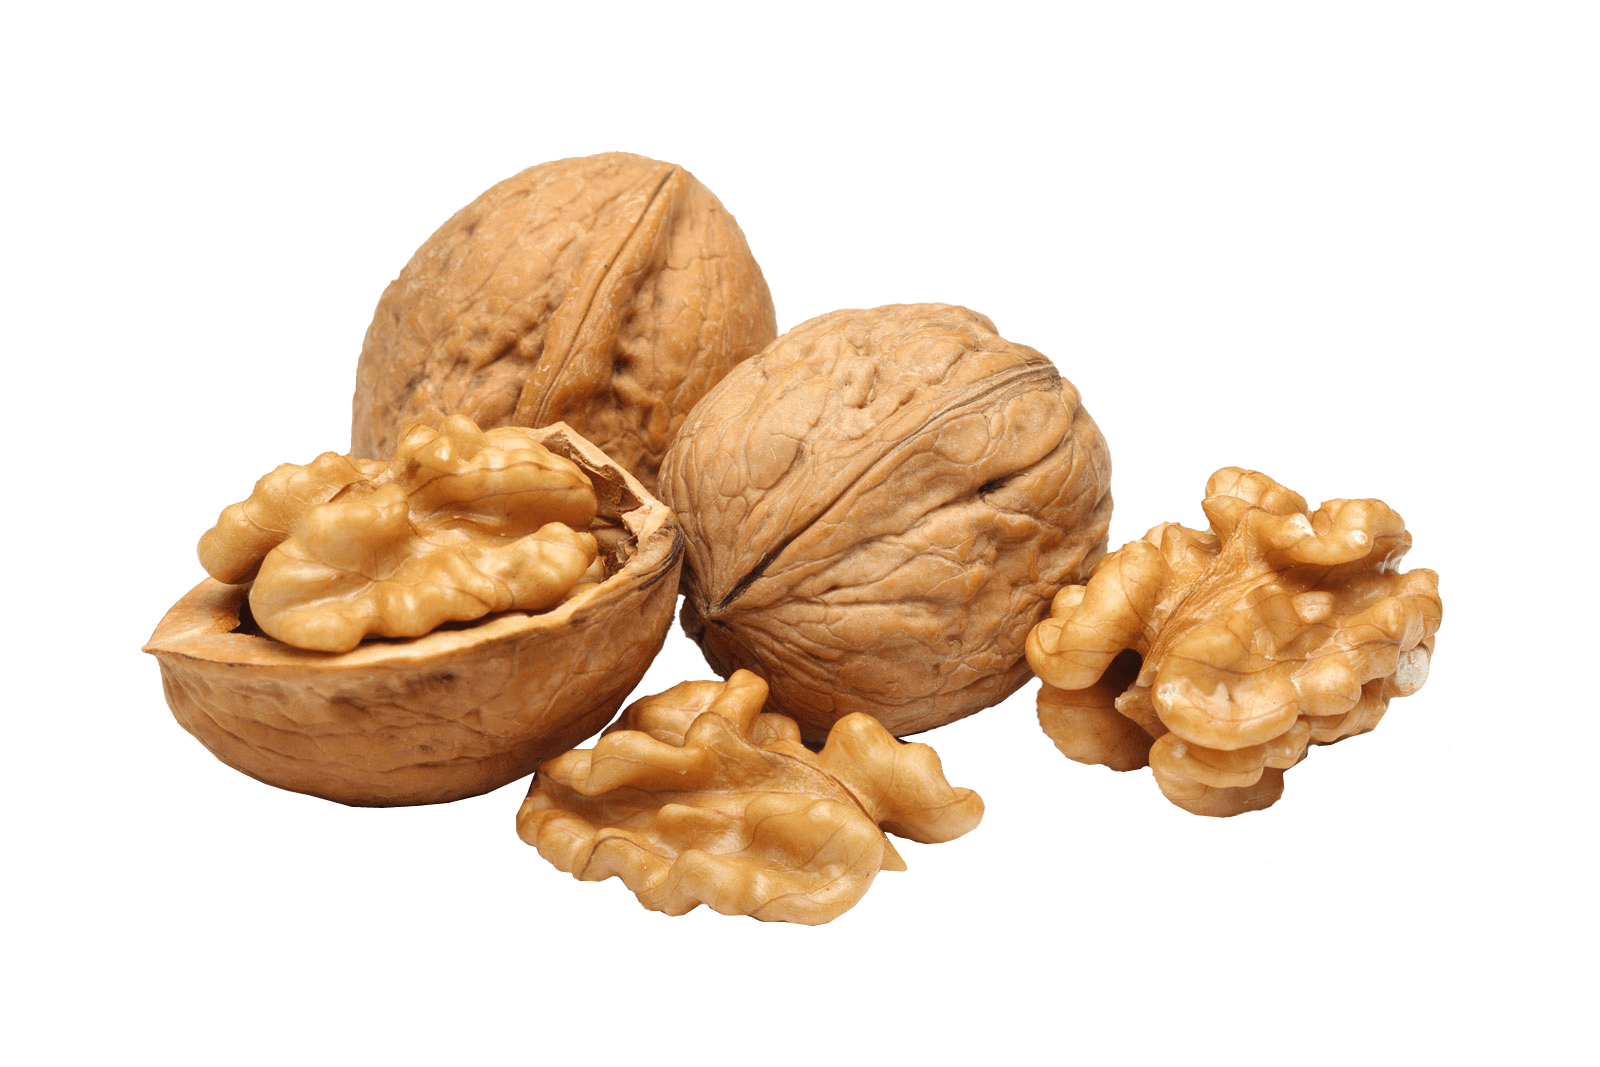 Walnut group transparent png. Peanuts clipart nut